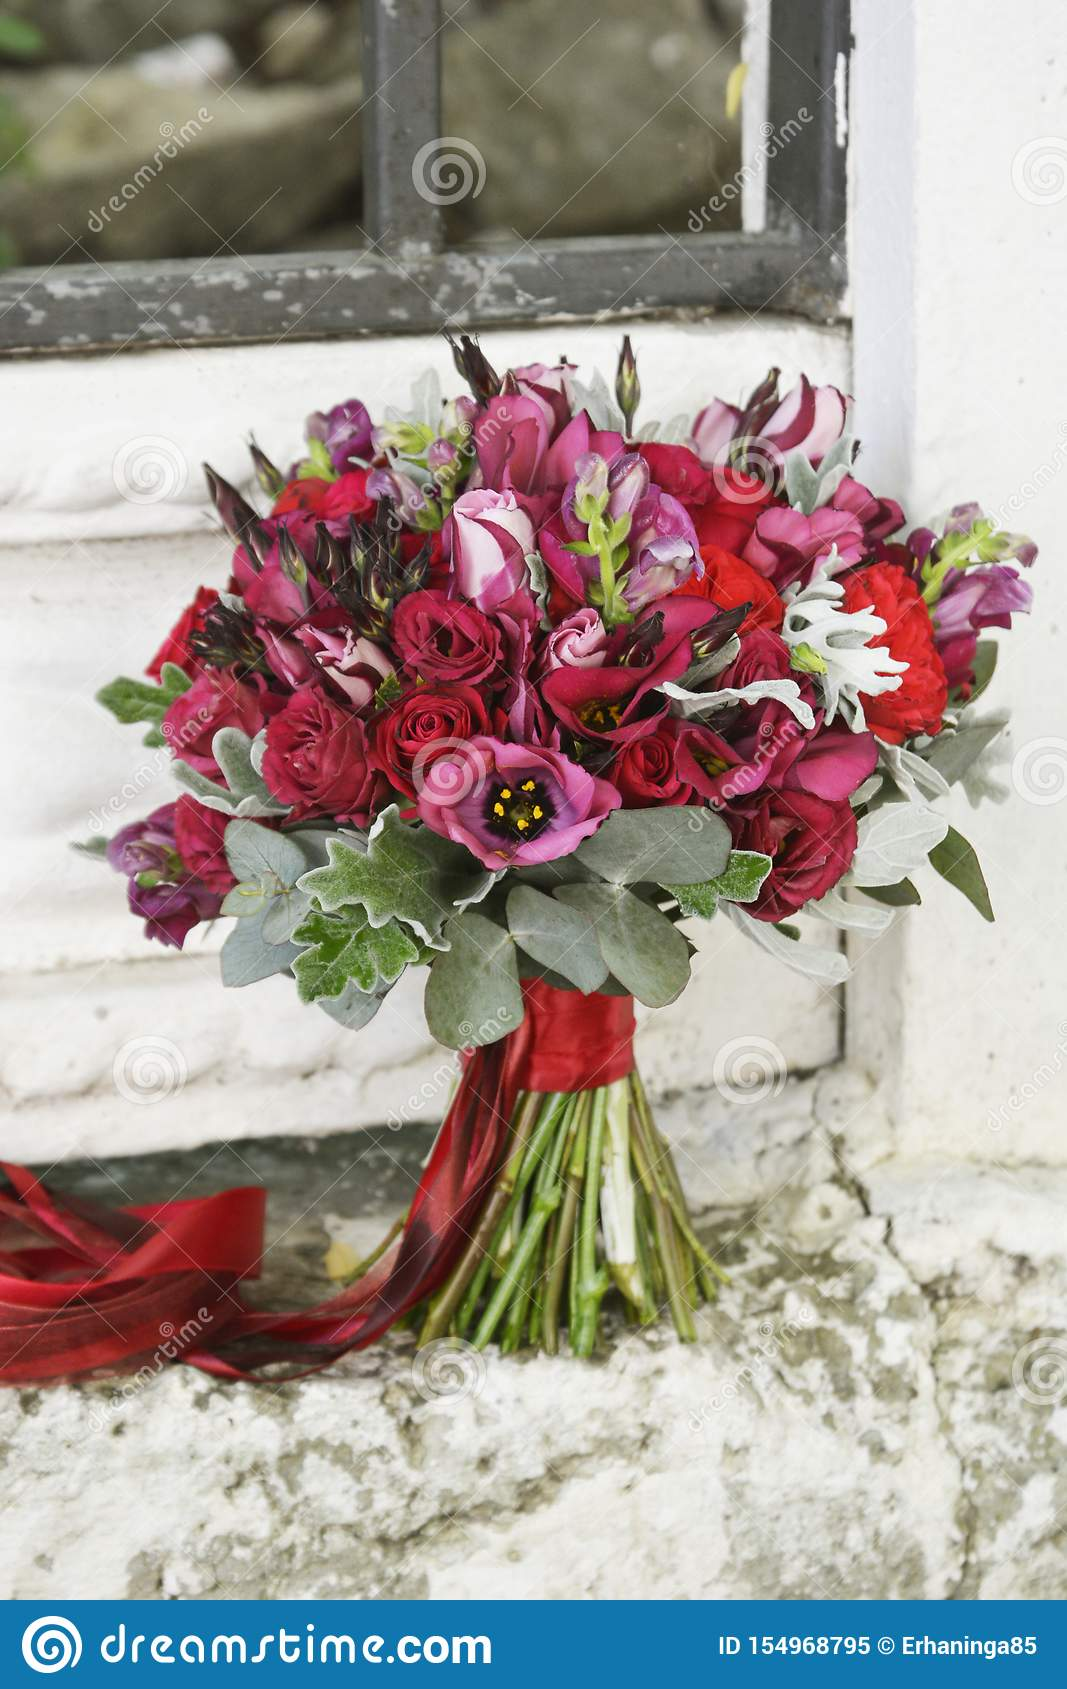 Stunning Red Bridal Bouquet Wedding Ceremony Stock Image Image Of Flower Ceremony 154968795